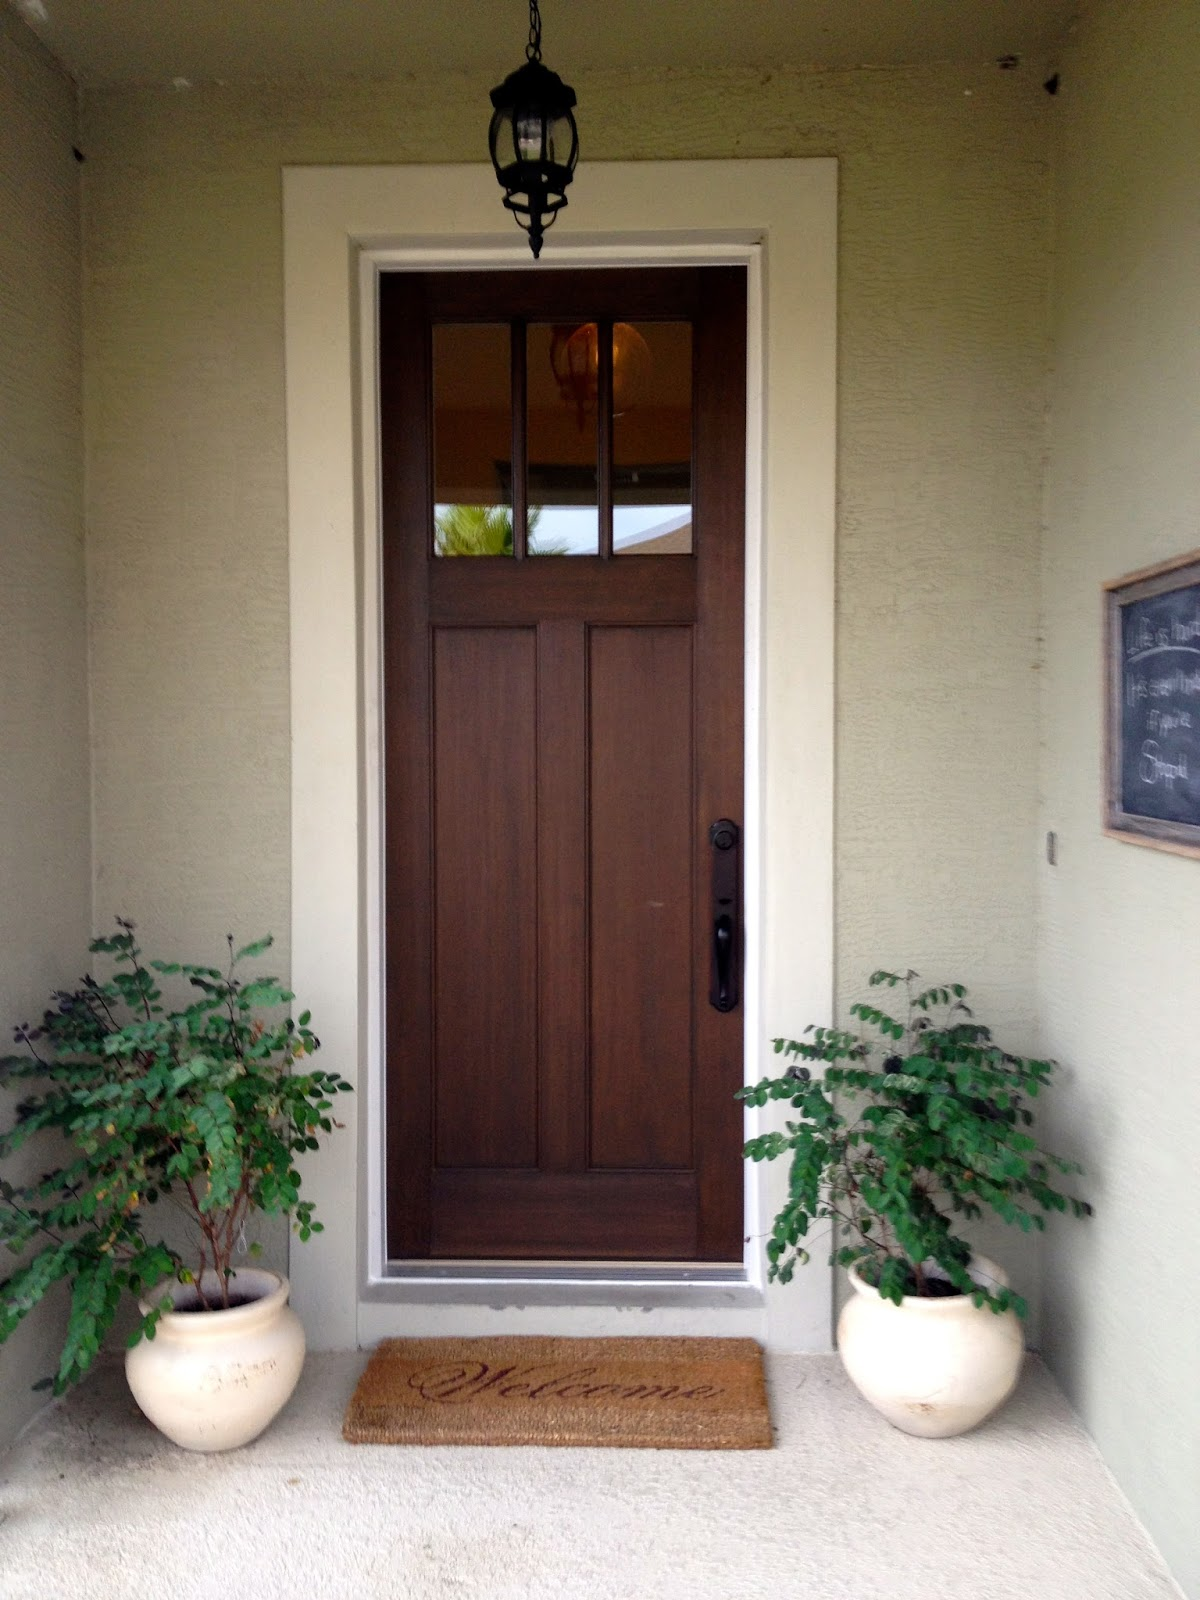 Entry Front Doors: My Home Tour: The First Year